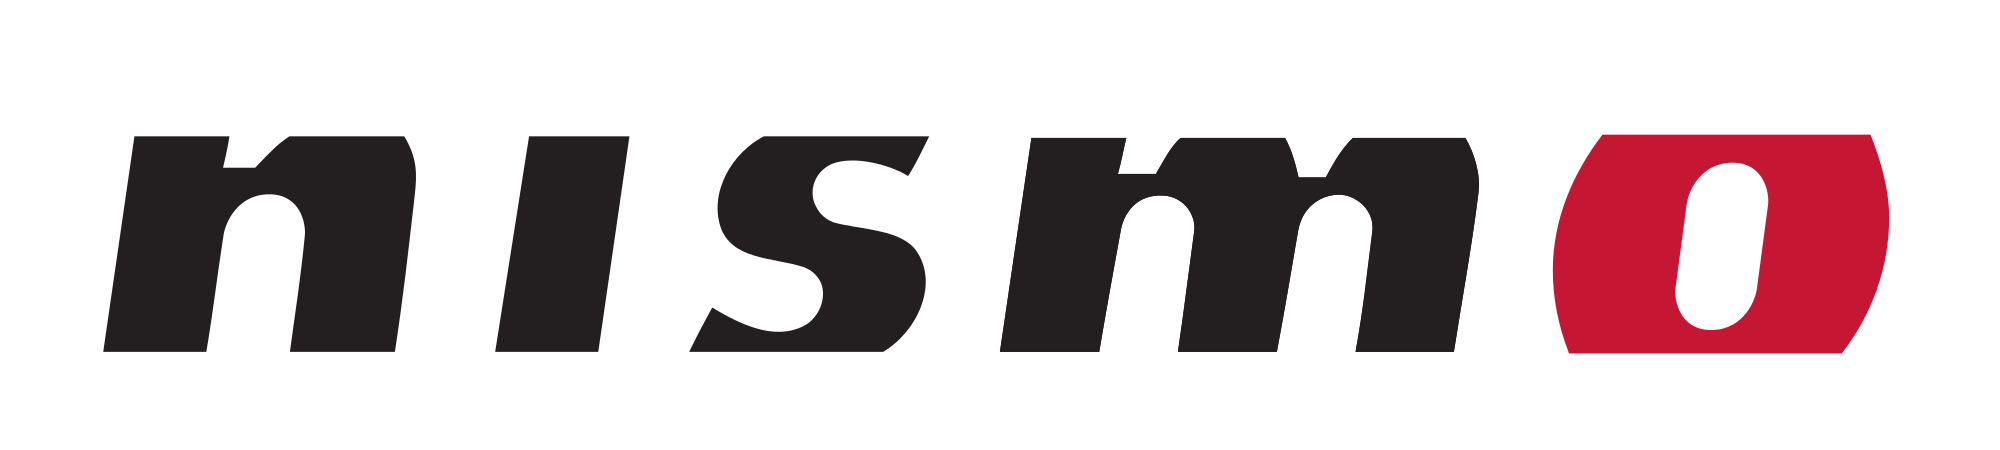 nissan nismo logo hd png information nissan nismo logo hd png information